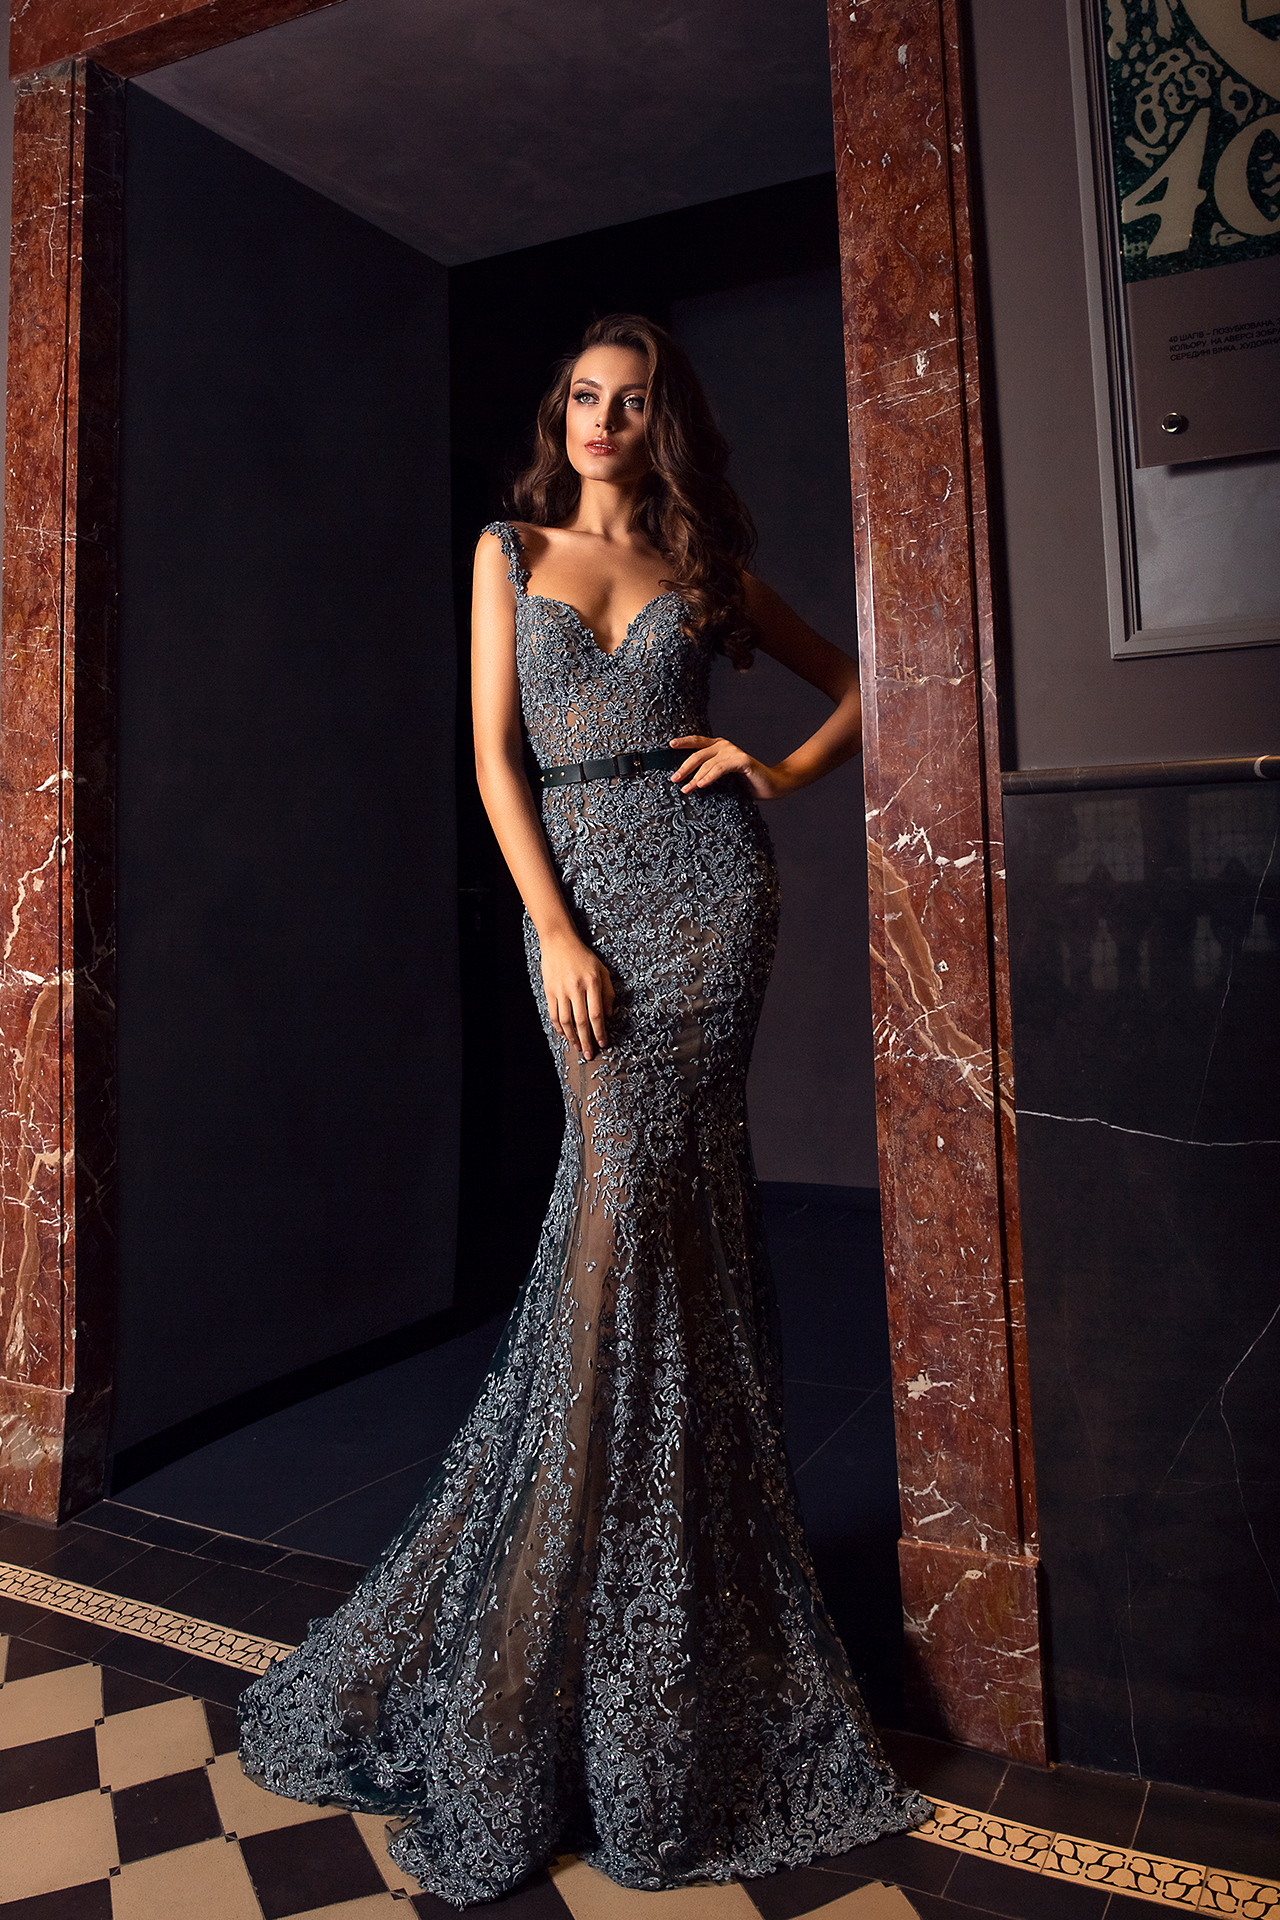 Evening gowns S-1477 Silhouette  Mermaid  Color  Grey  Neckline  Sweetheart  Sleeves  Wide straps  Train  With train - foto 3